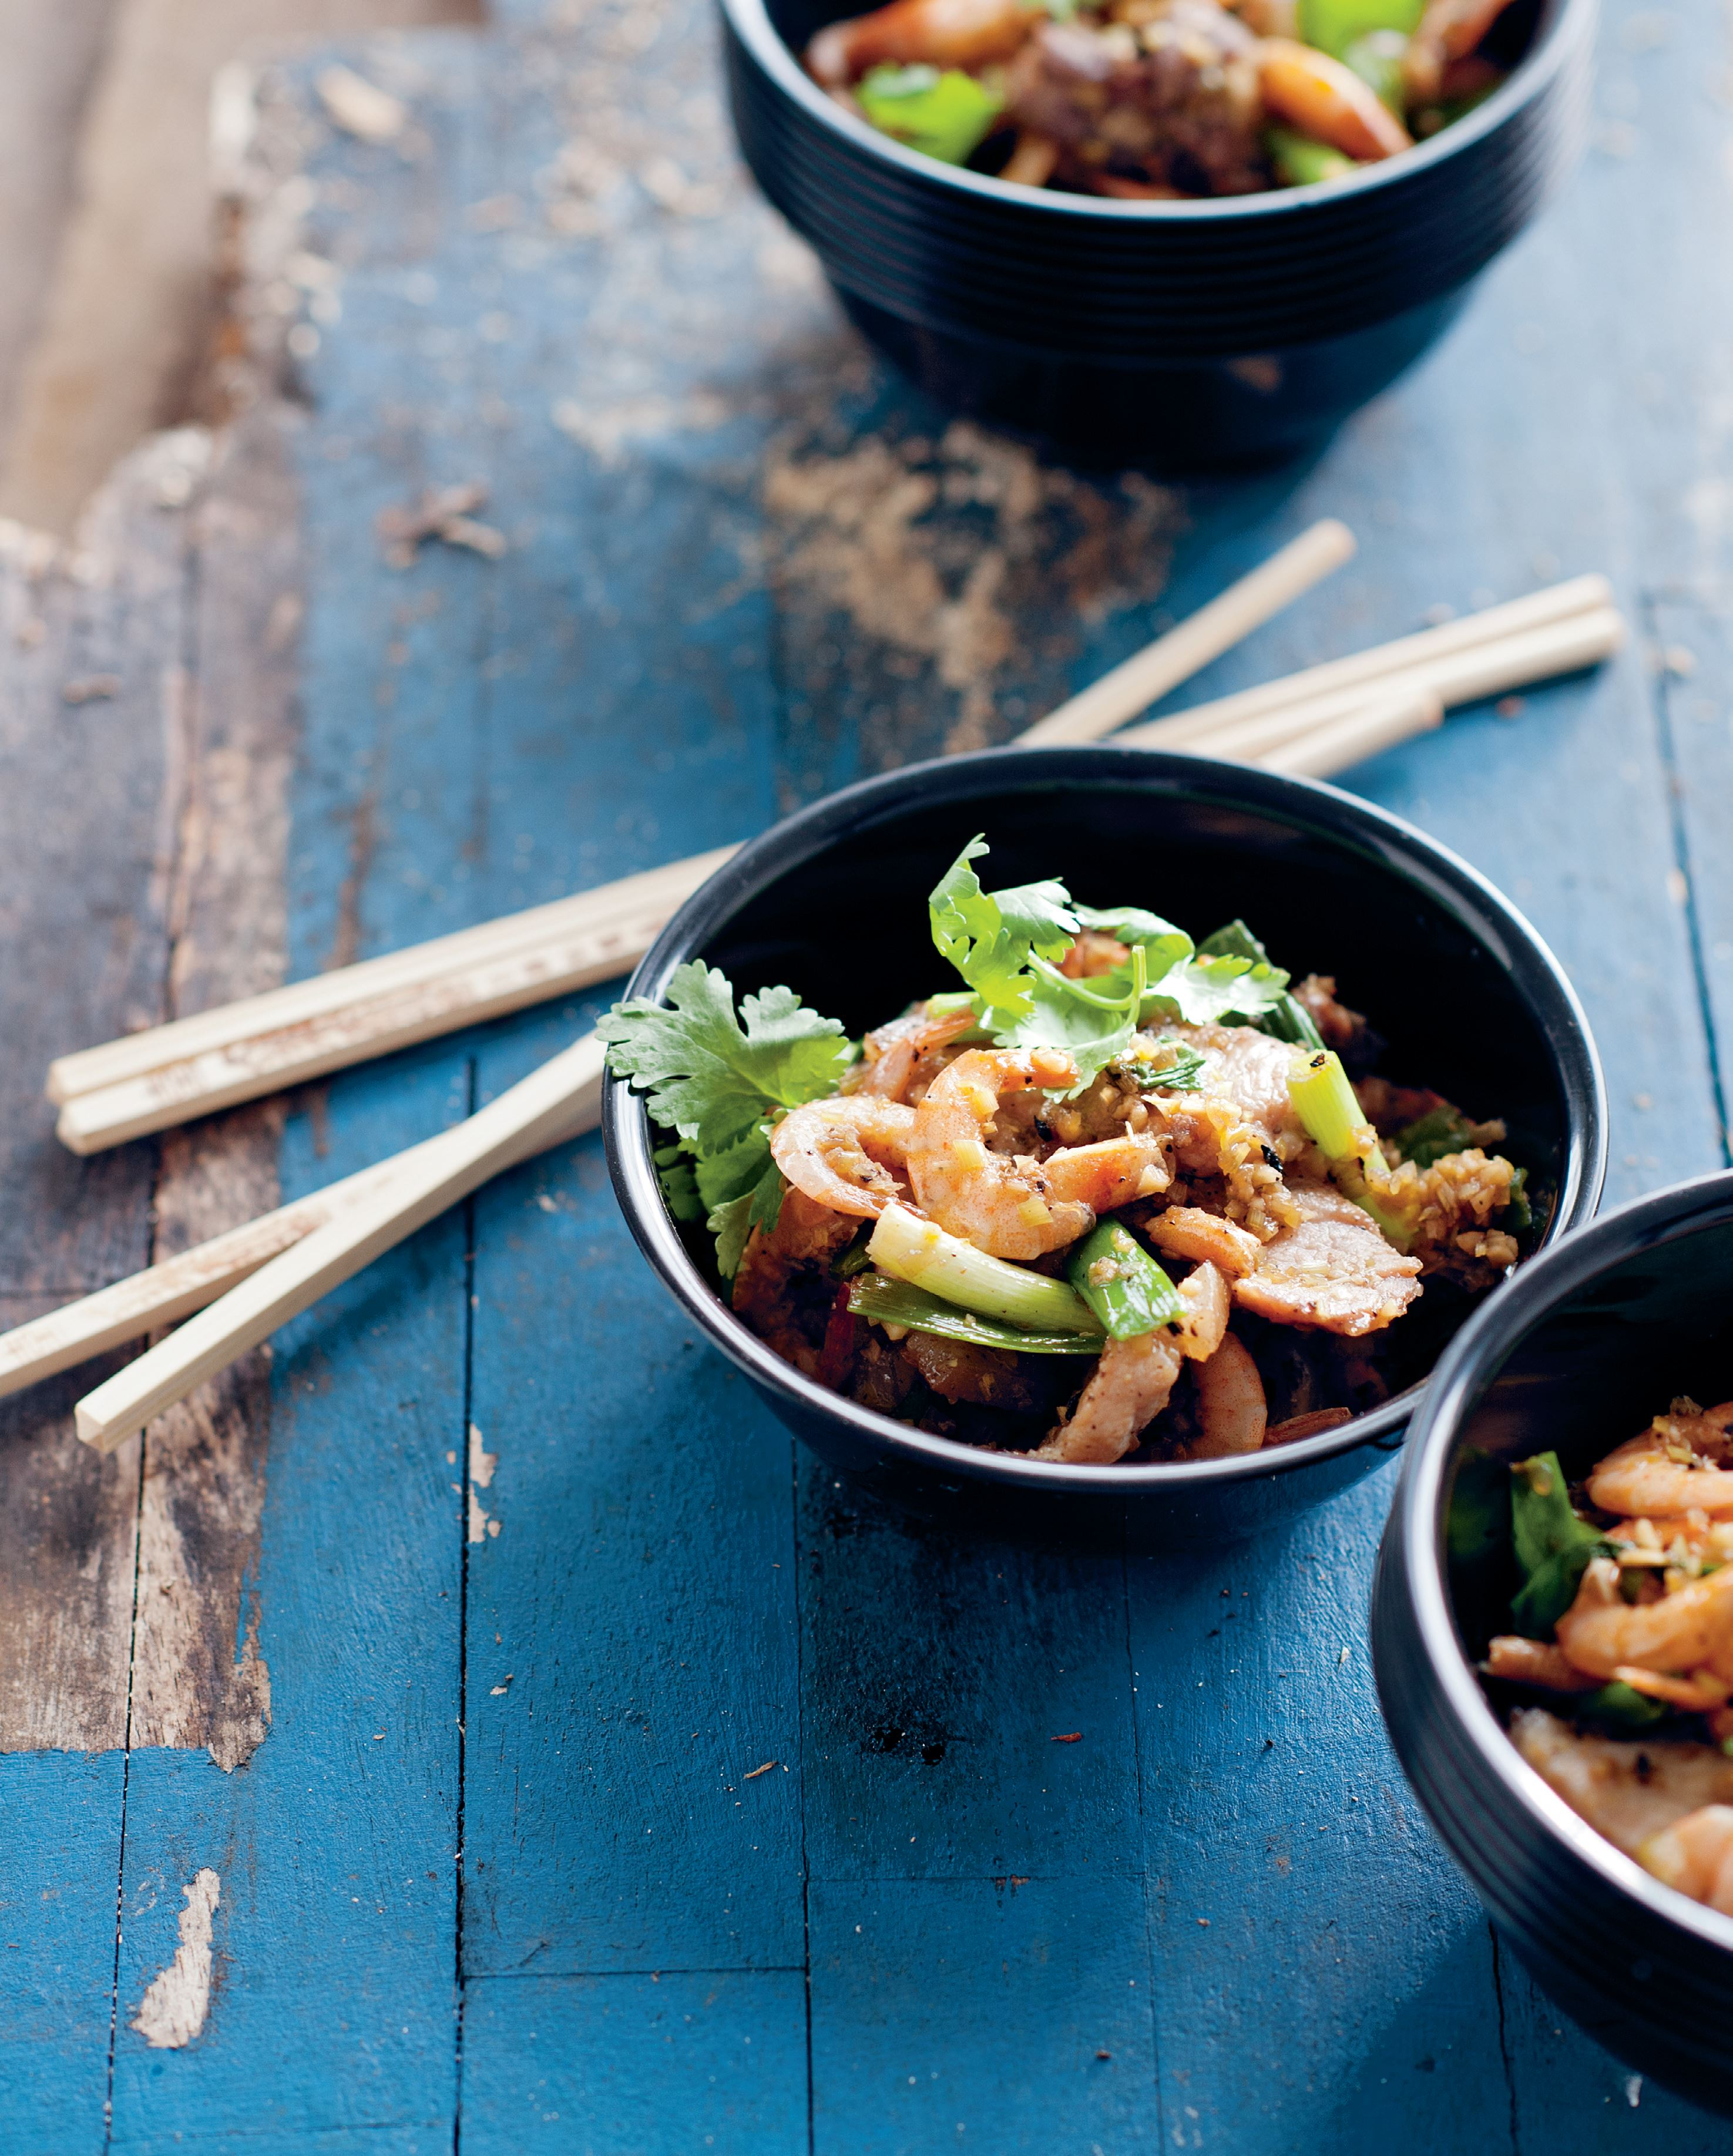 Mekong school prawns stir-fried with pork belly